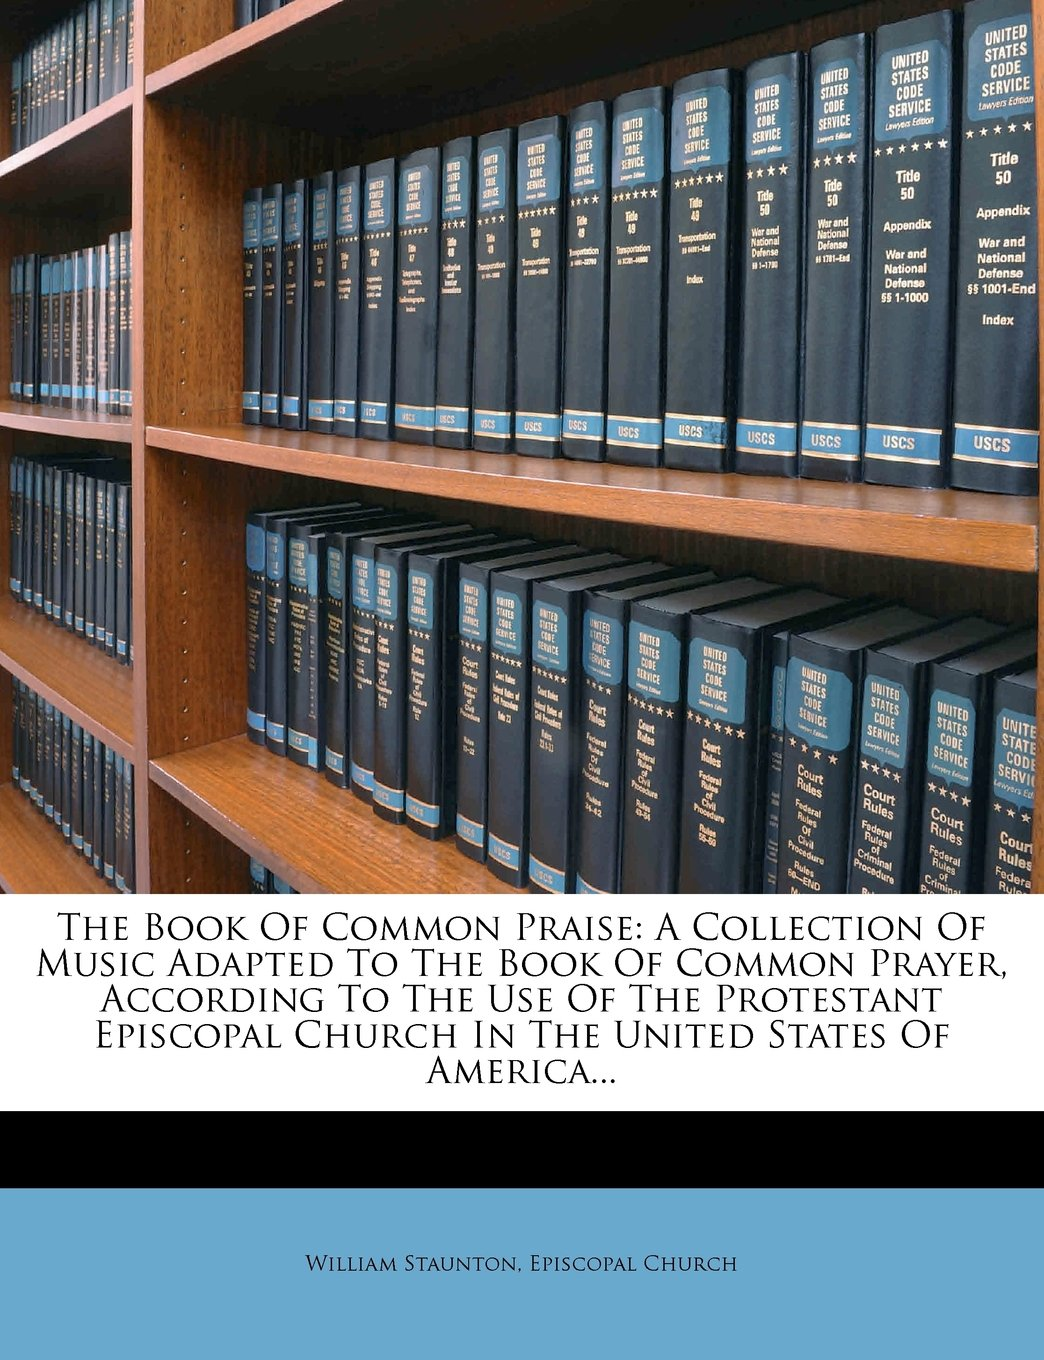 The Book Of Common Praise: A Collection Of Music Adapted To The Book Of Common Prayer, According To The Use Of The Protestant Episcopal Church In The United States Of America... PDF